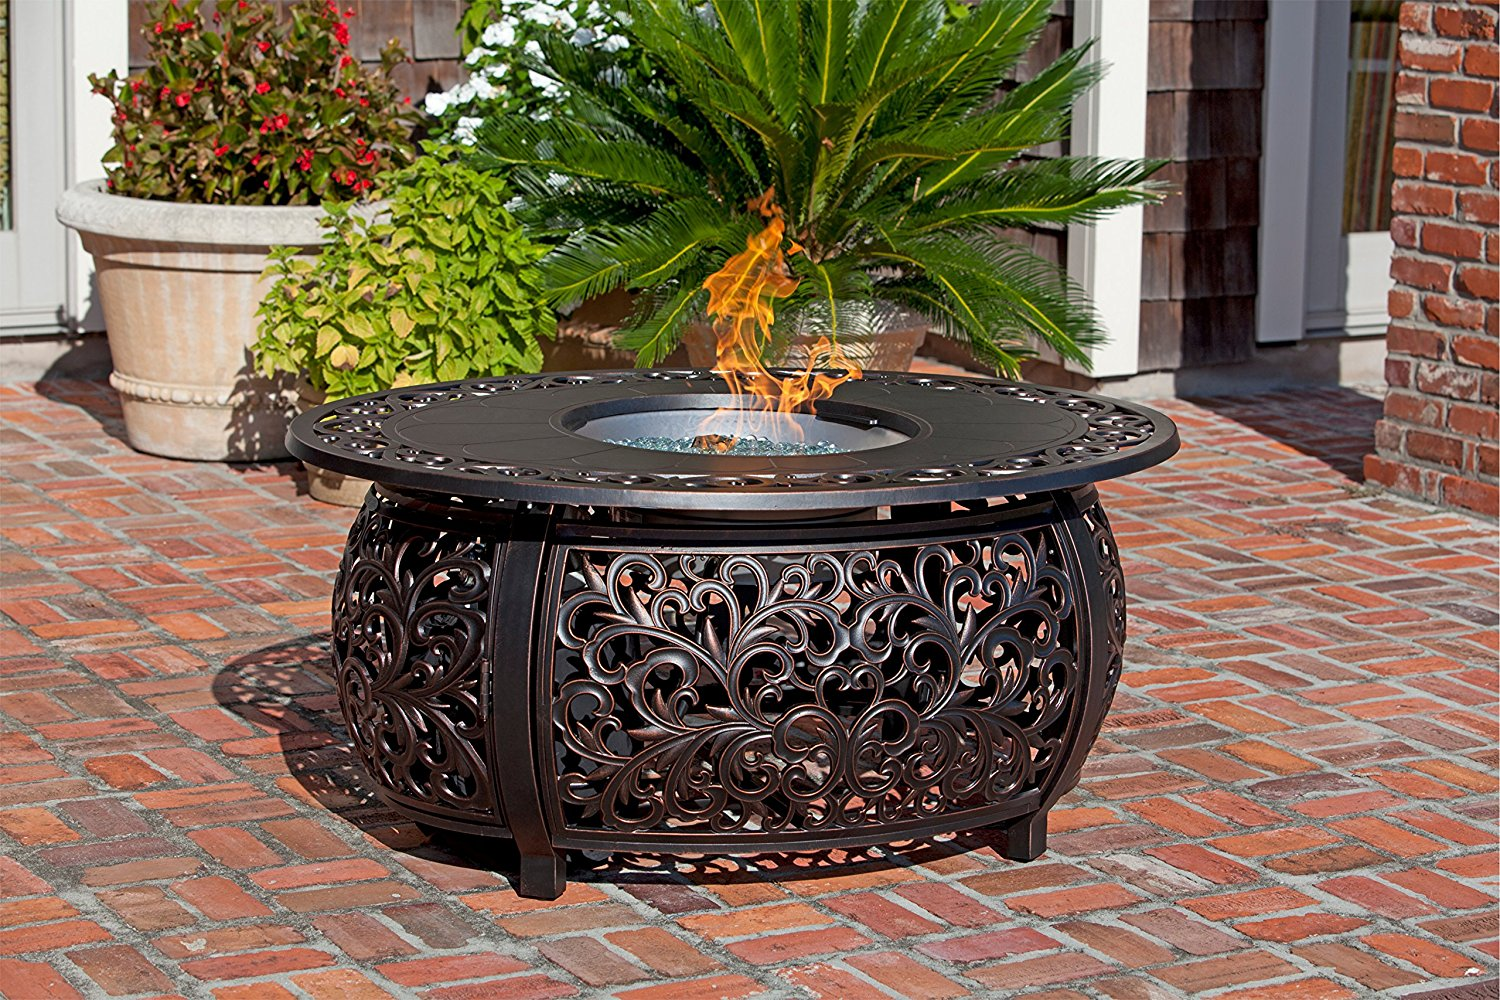 91l86kqpul Sl1500 Outdoor Fire Pits Fireplaces Amp Grills